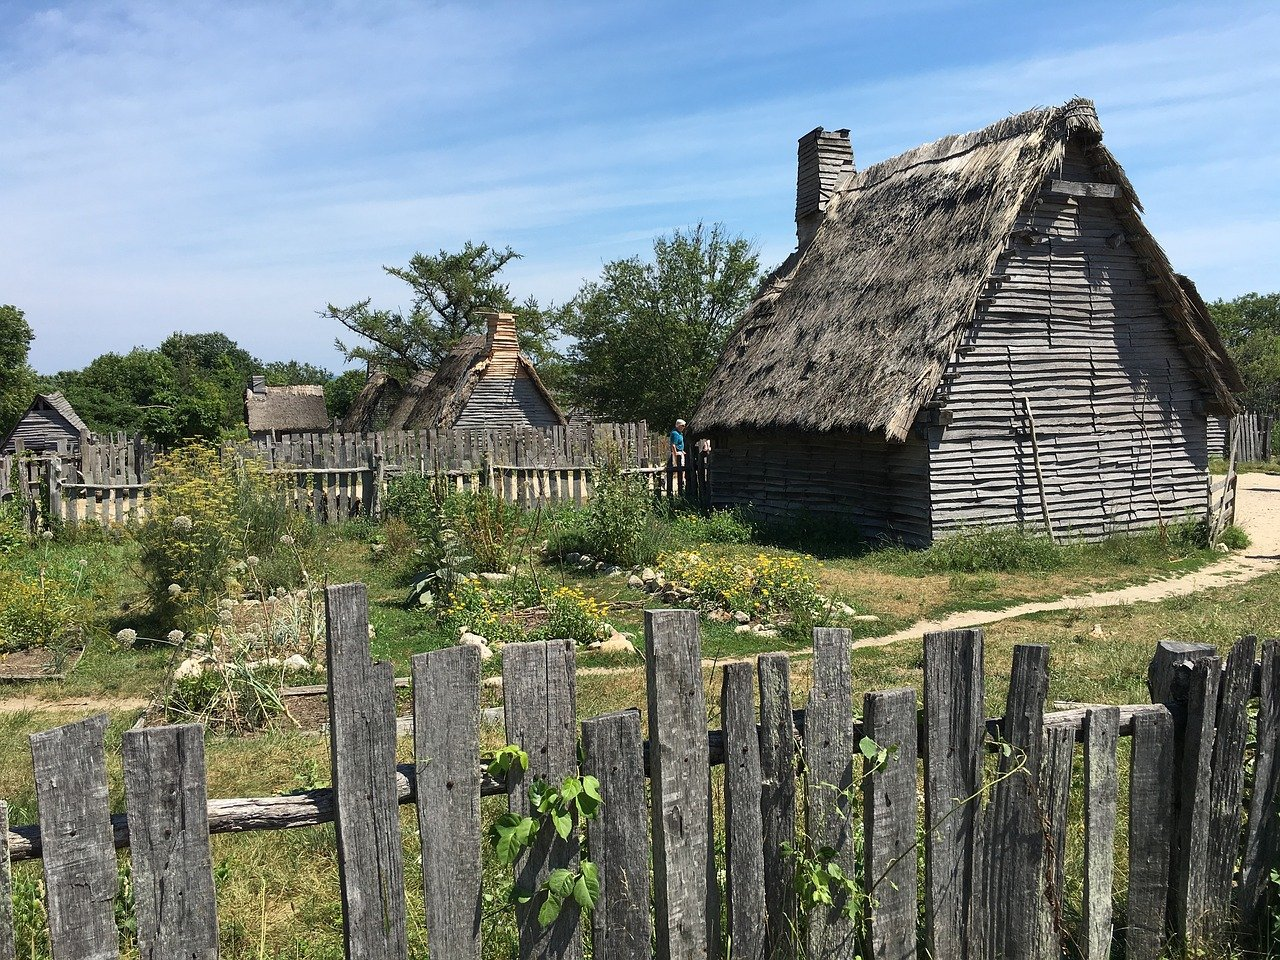 The 17th-century English village replica at Plimouth Plantation